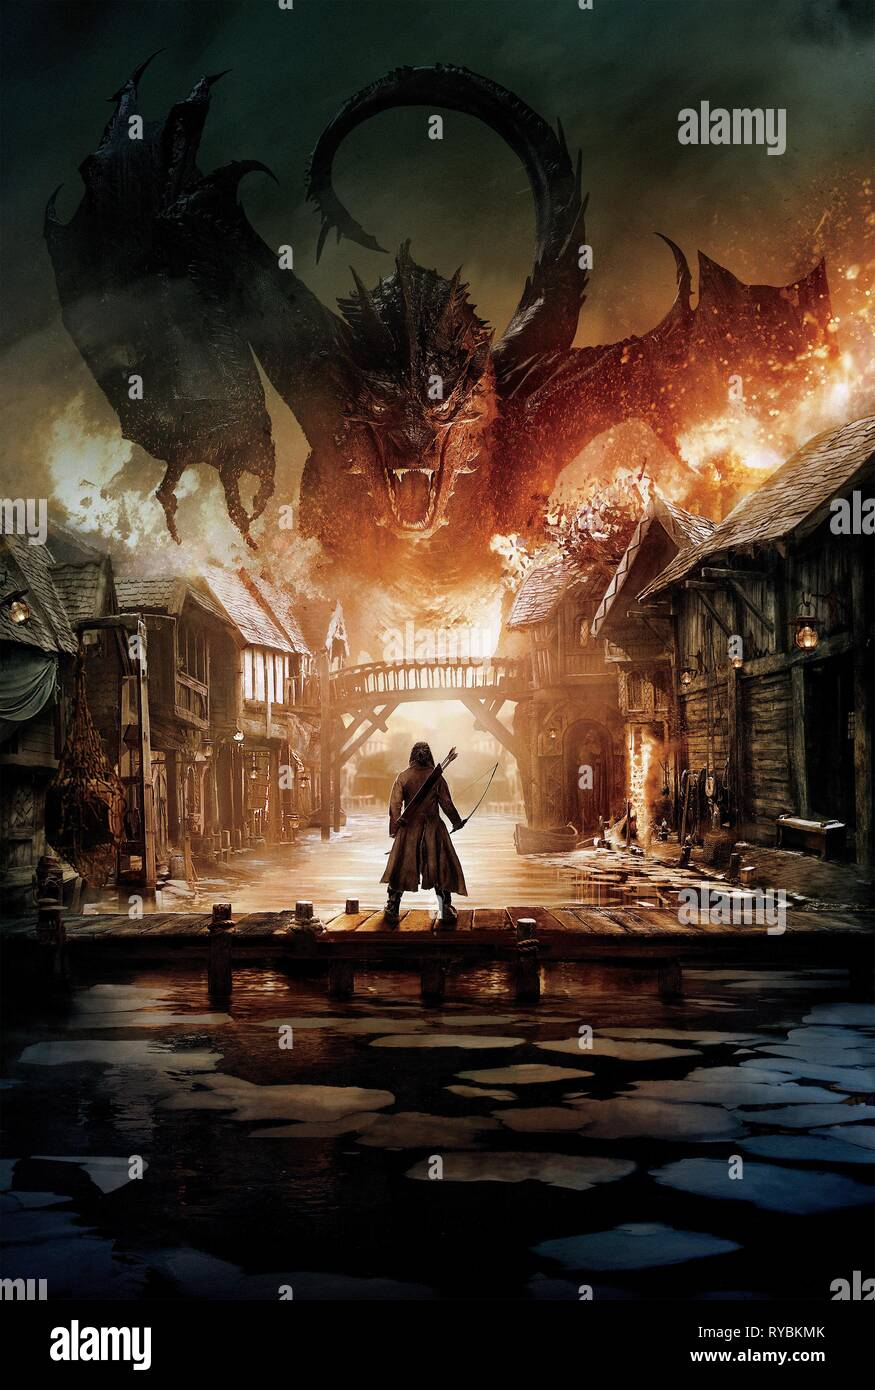 LUKE EVANS, THE HOBBIT: THE BATTLE OF THE FIVE ARMIES, 2014 - Stock Image